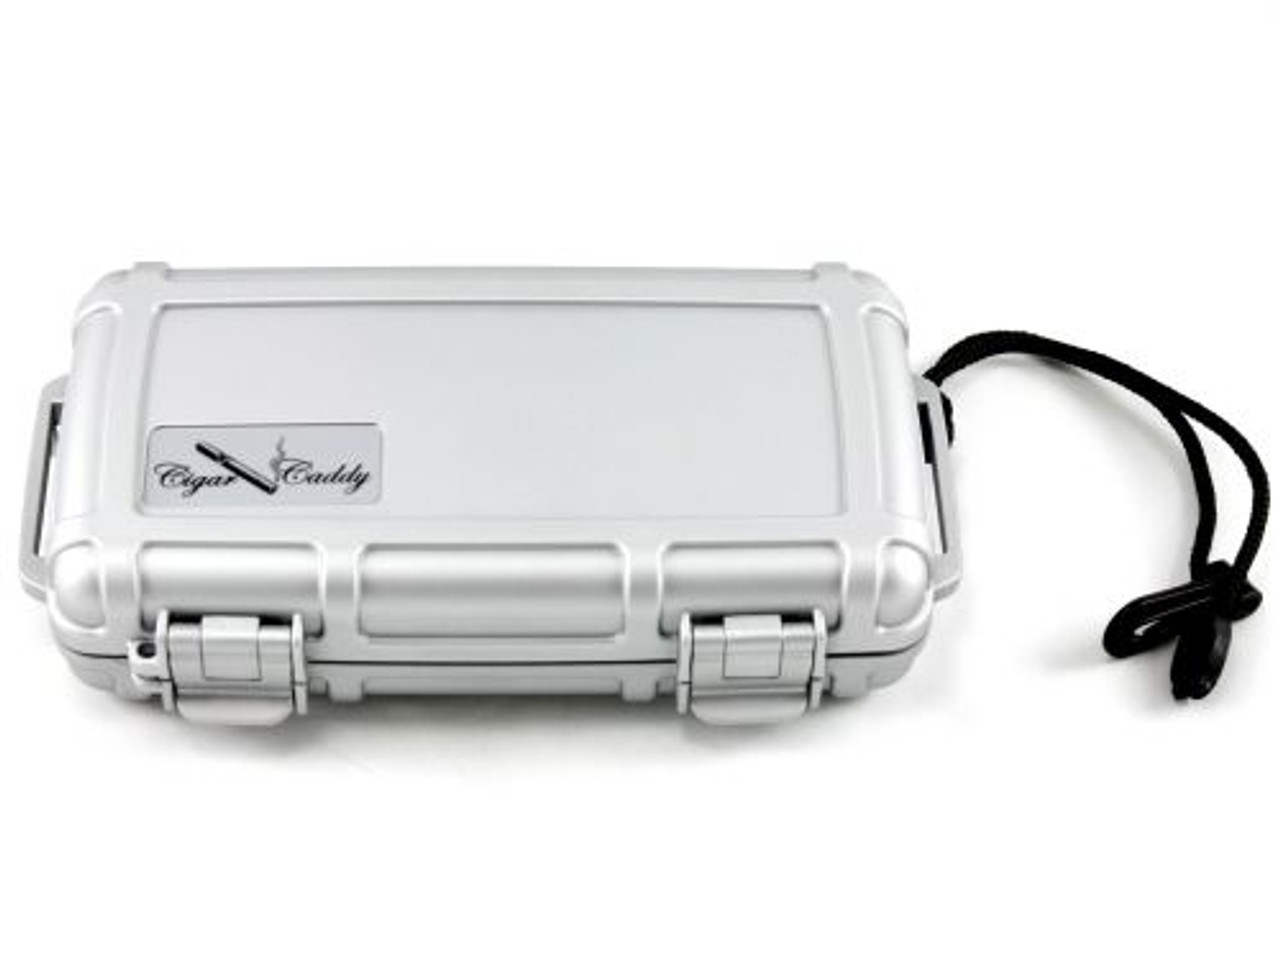 Cigar Caddy Silver 5 Stick Travel Cigar Humidor